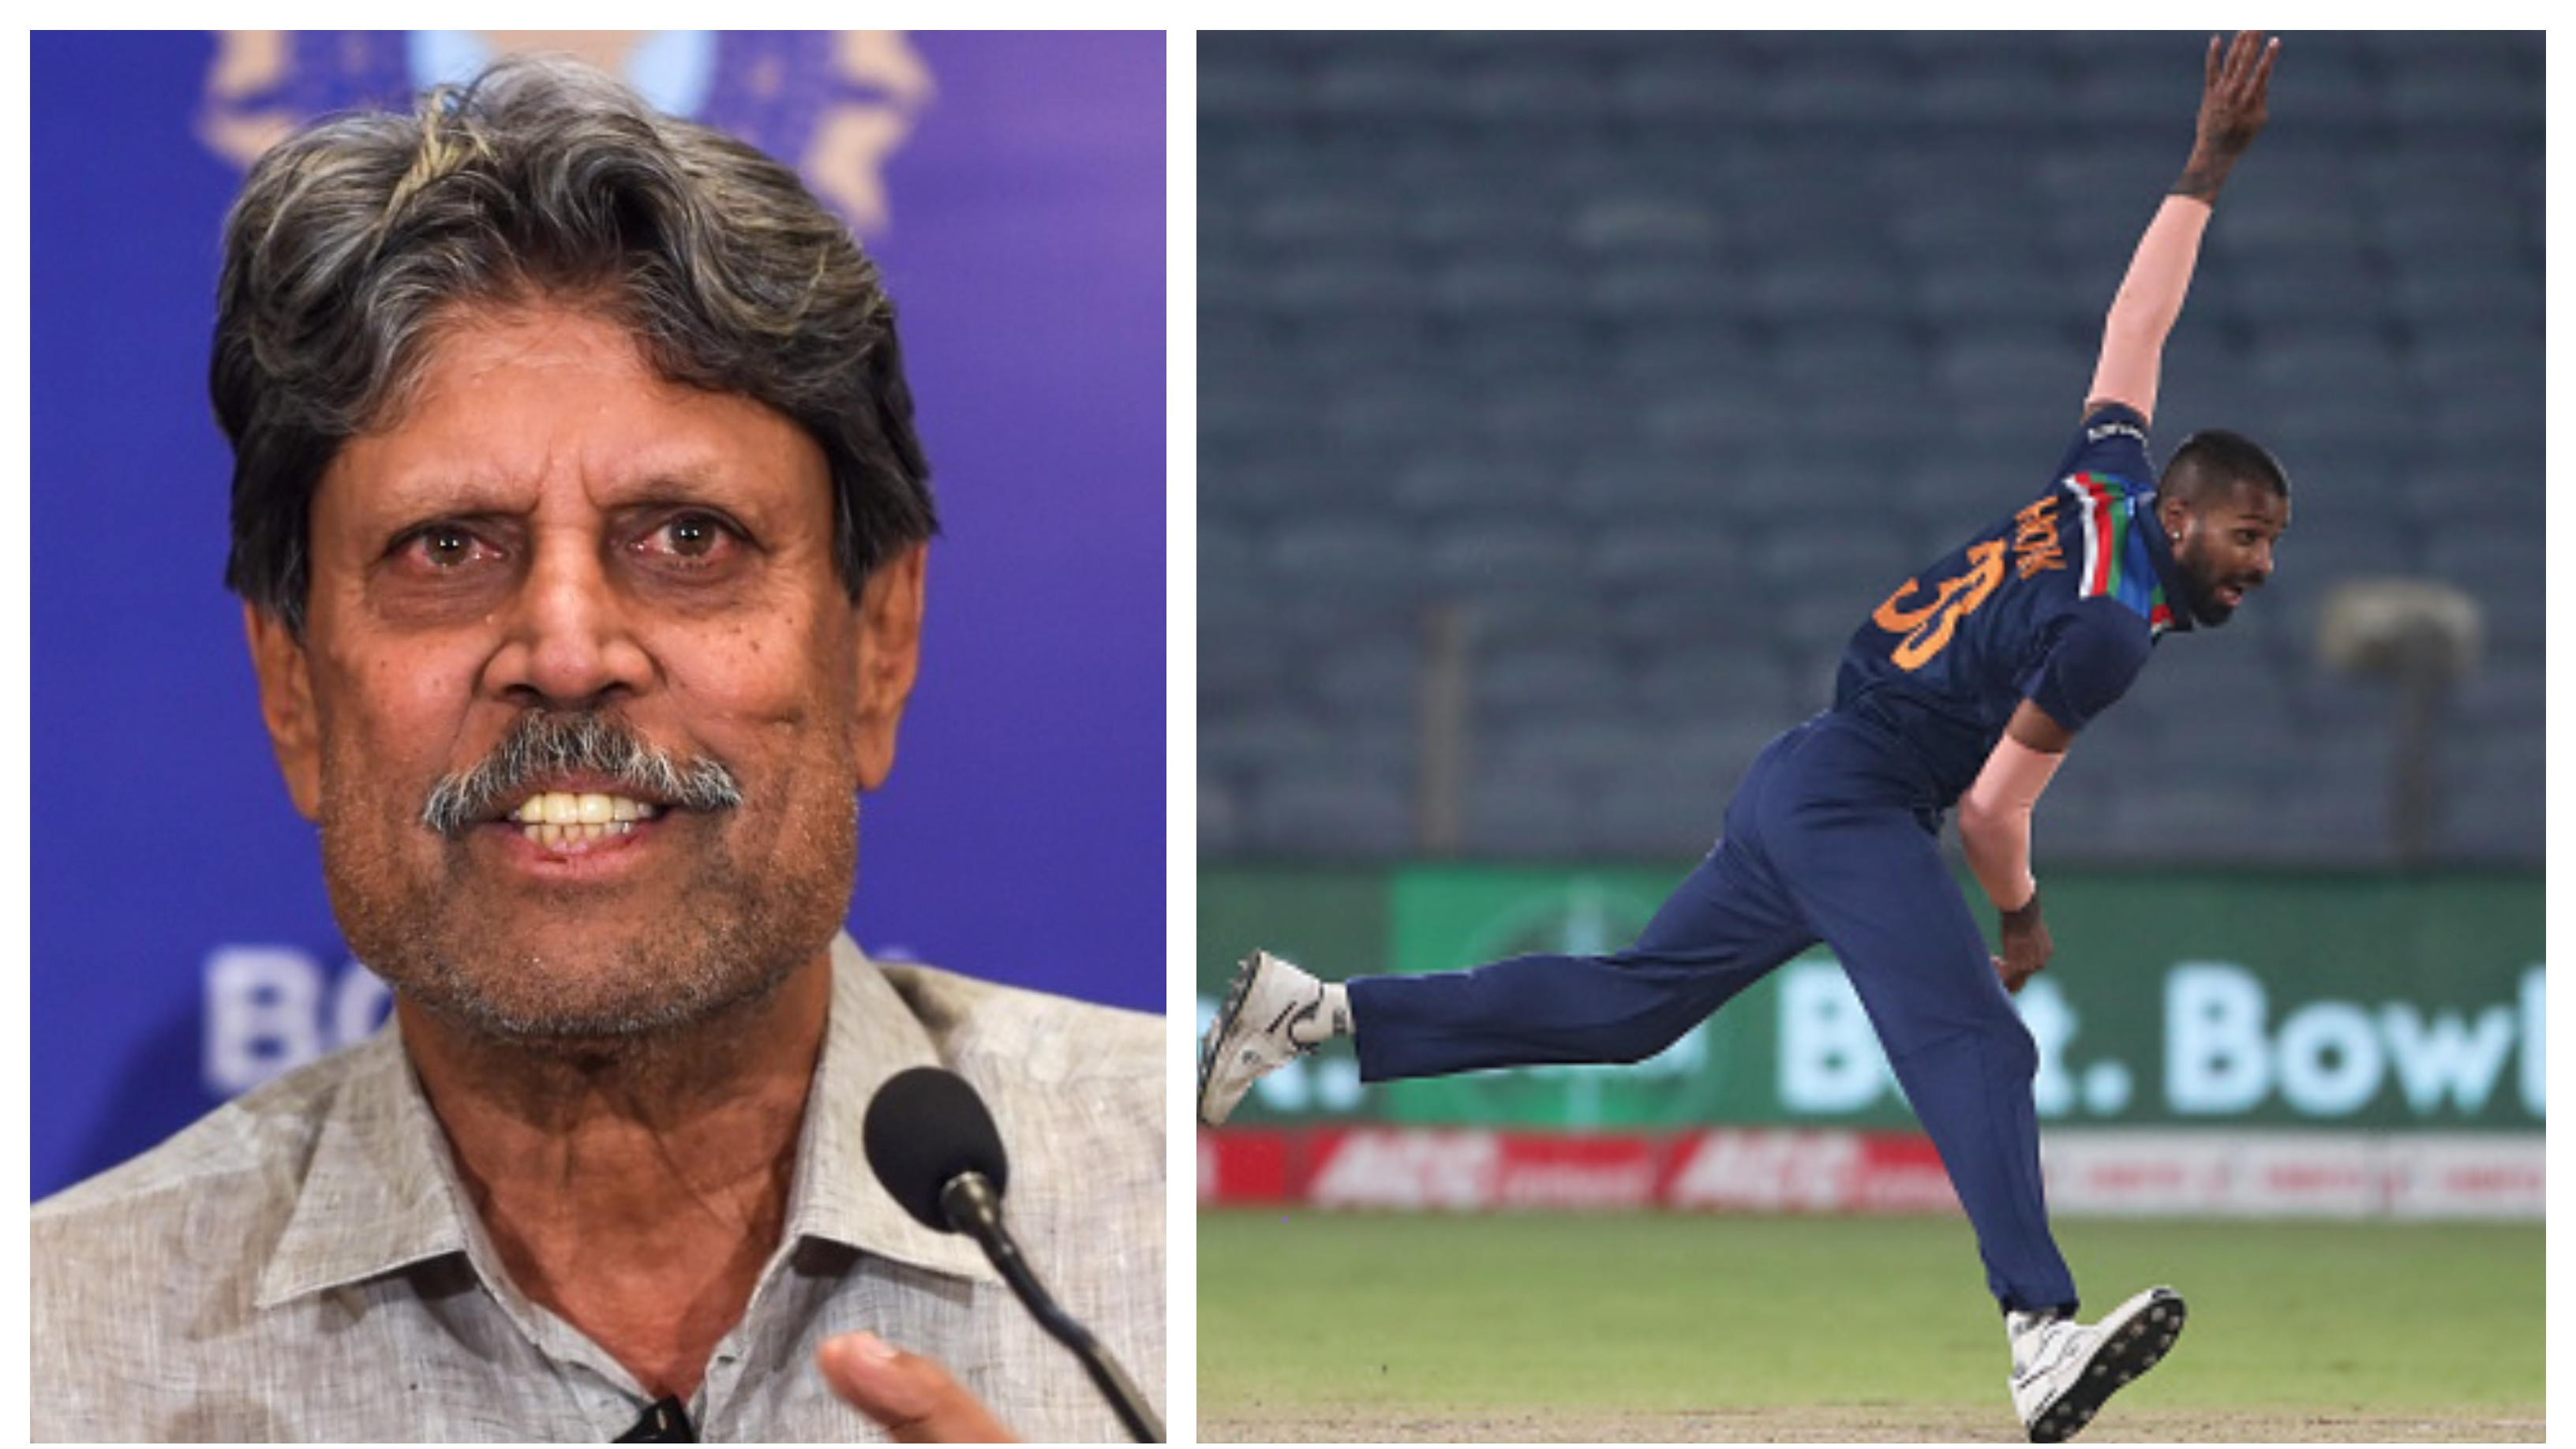 T20 World Cup 2021: 'India should be okay given the talent in team', Kapil Dev on Hardik Pandya not bowling